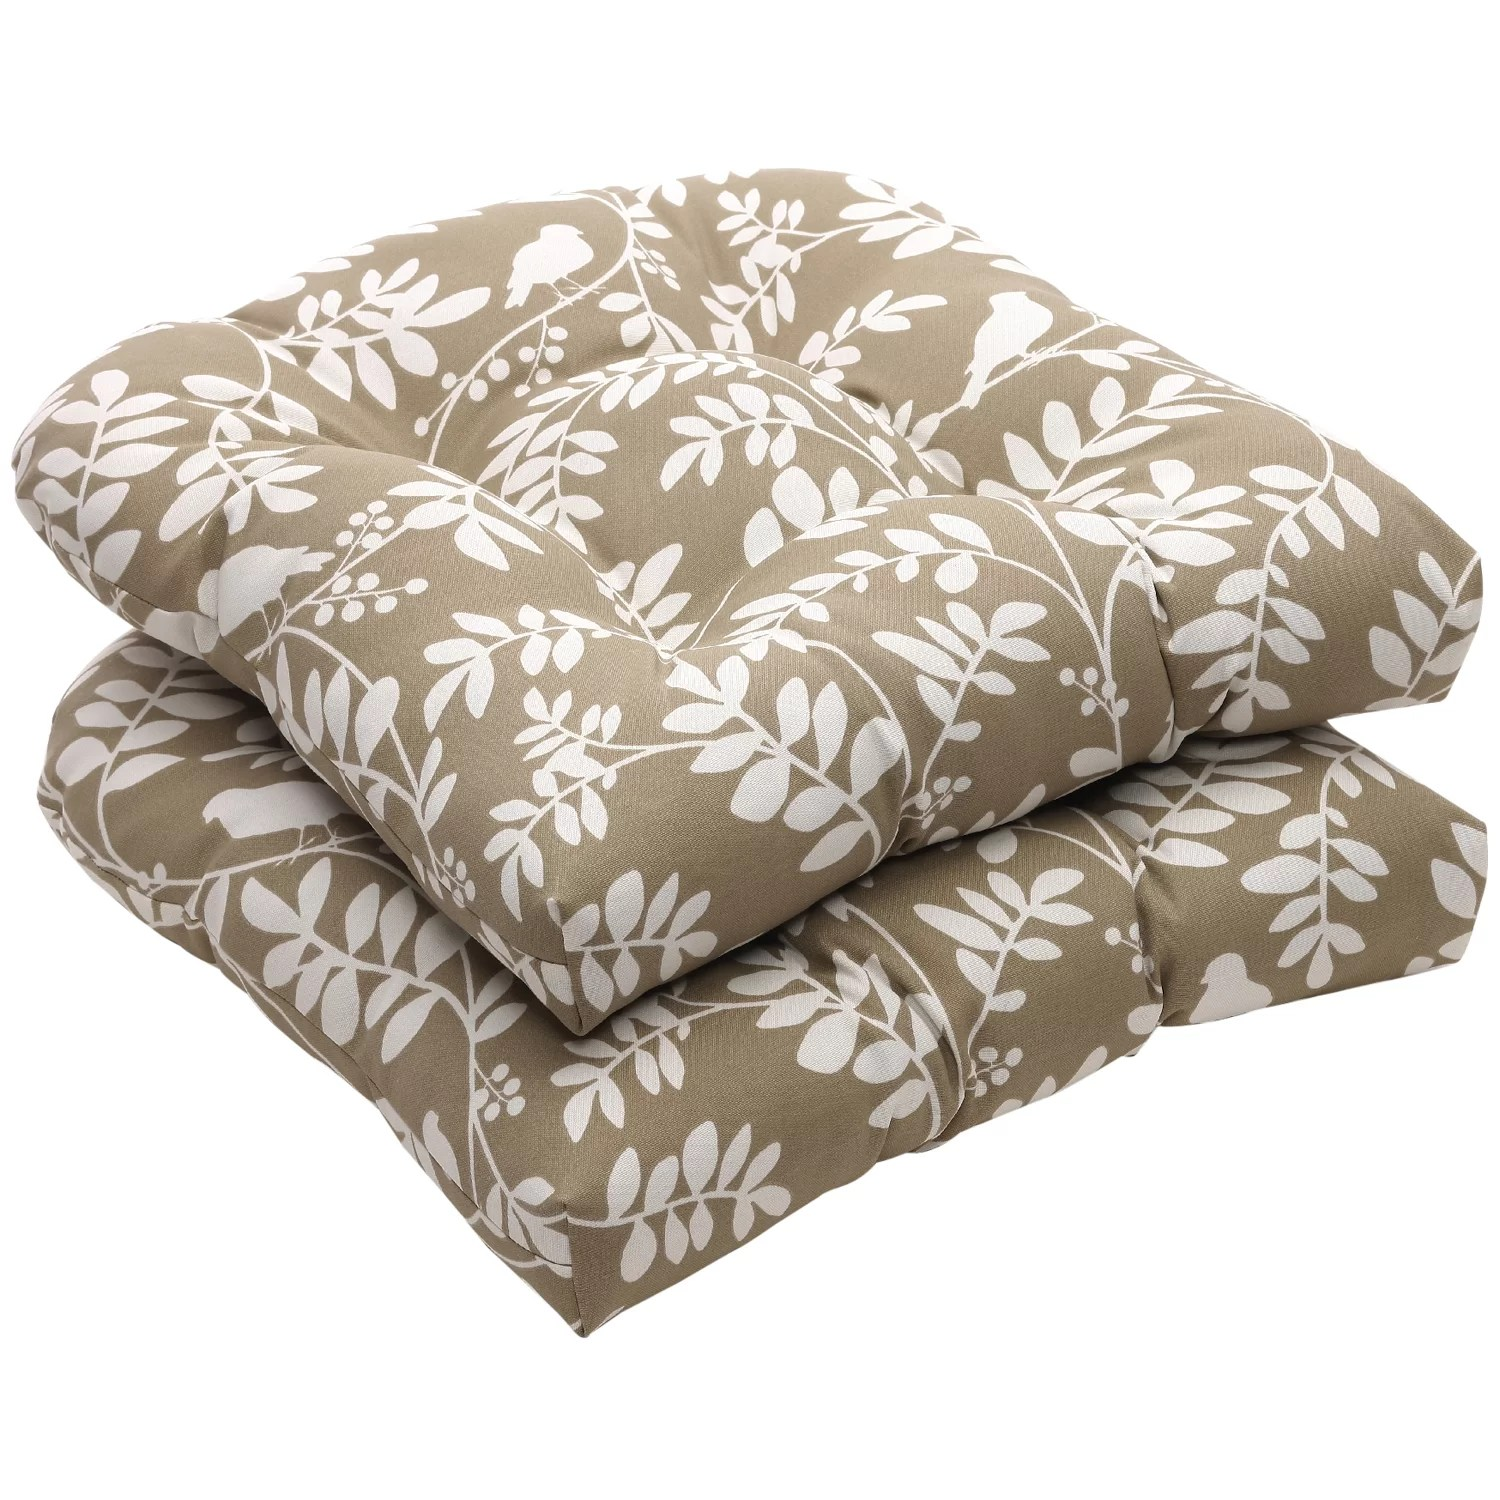 seat cushions for wicker chairs pottery barn dinning charlton home outdoor chair cushion and reviews wayfair